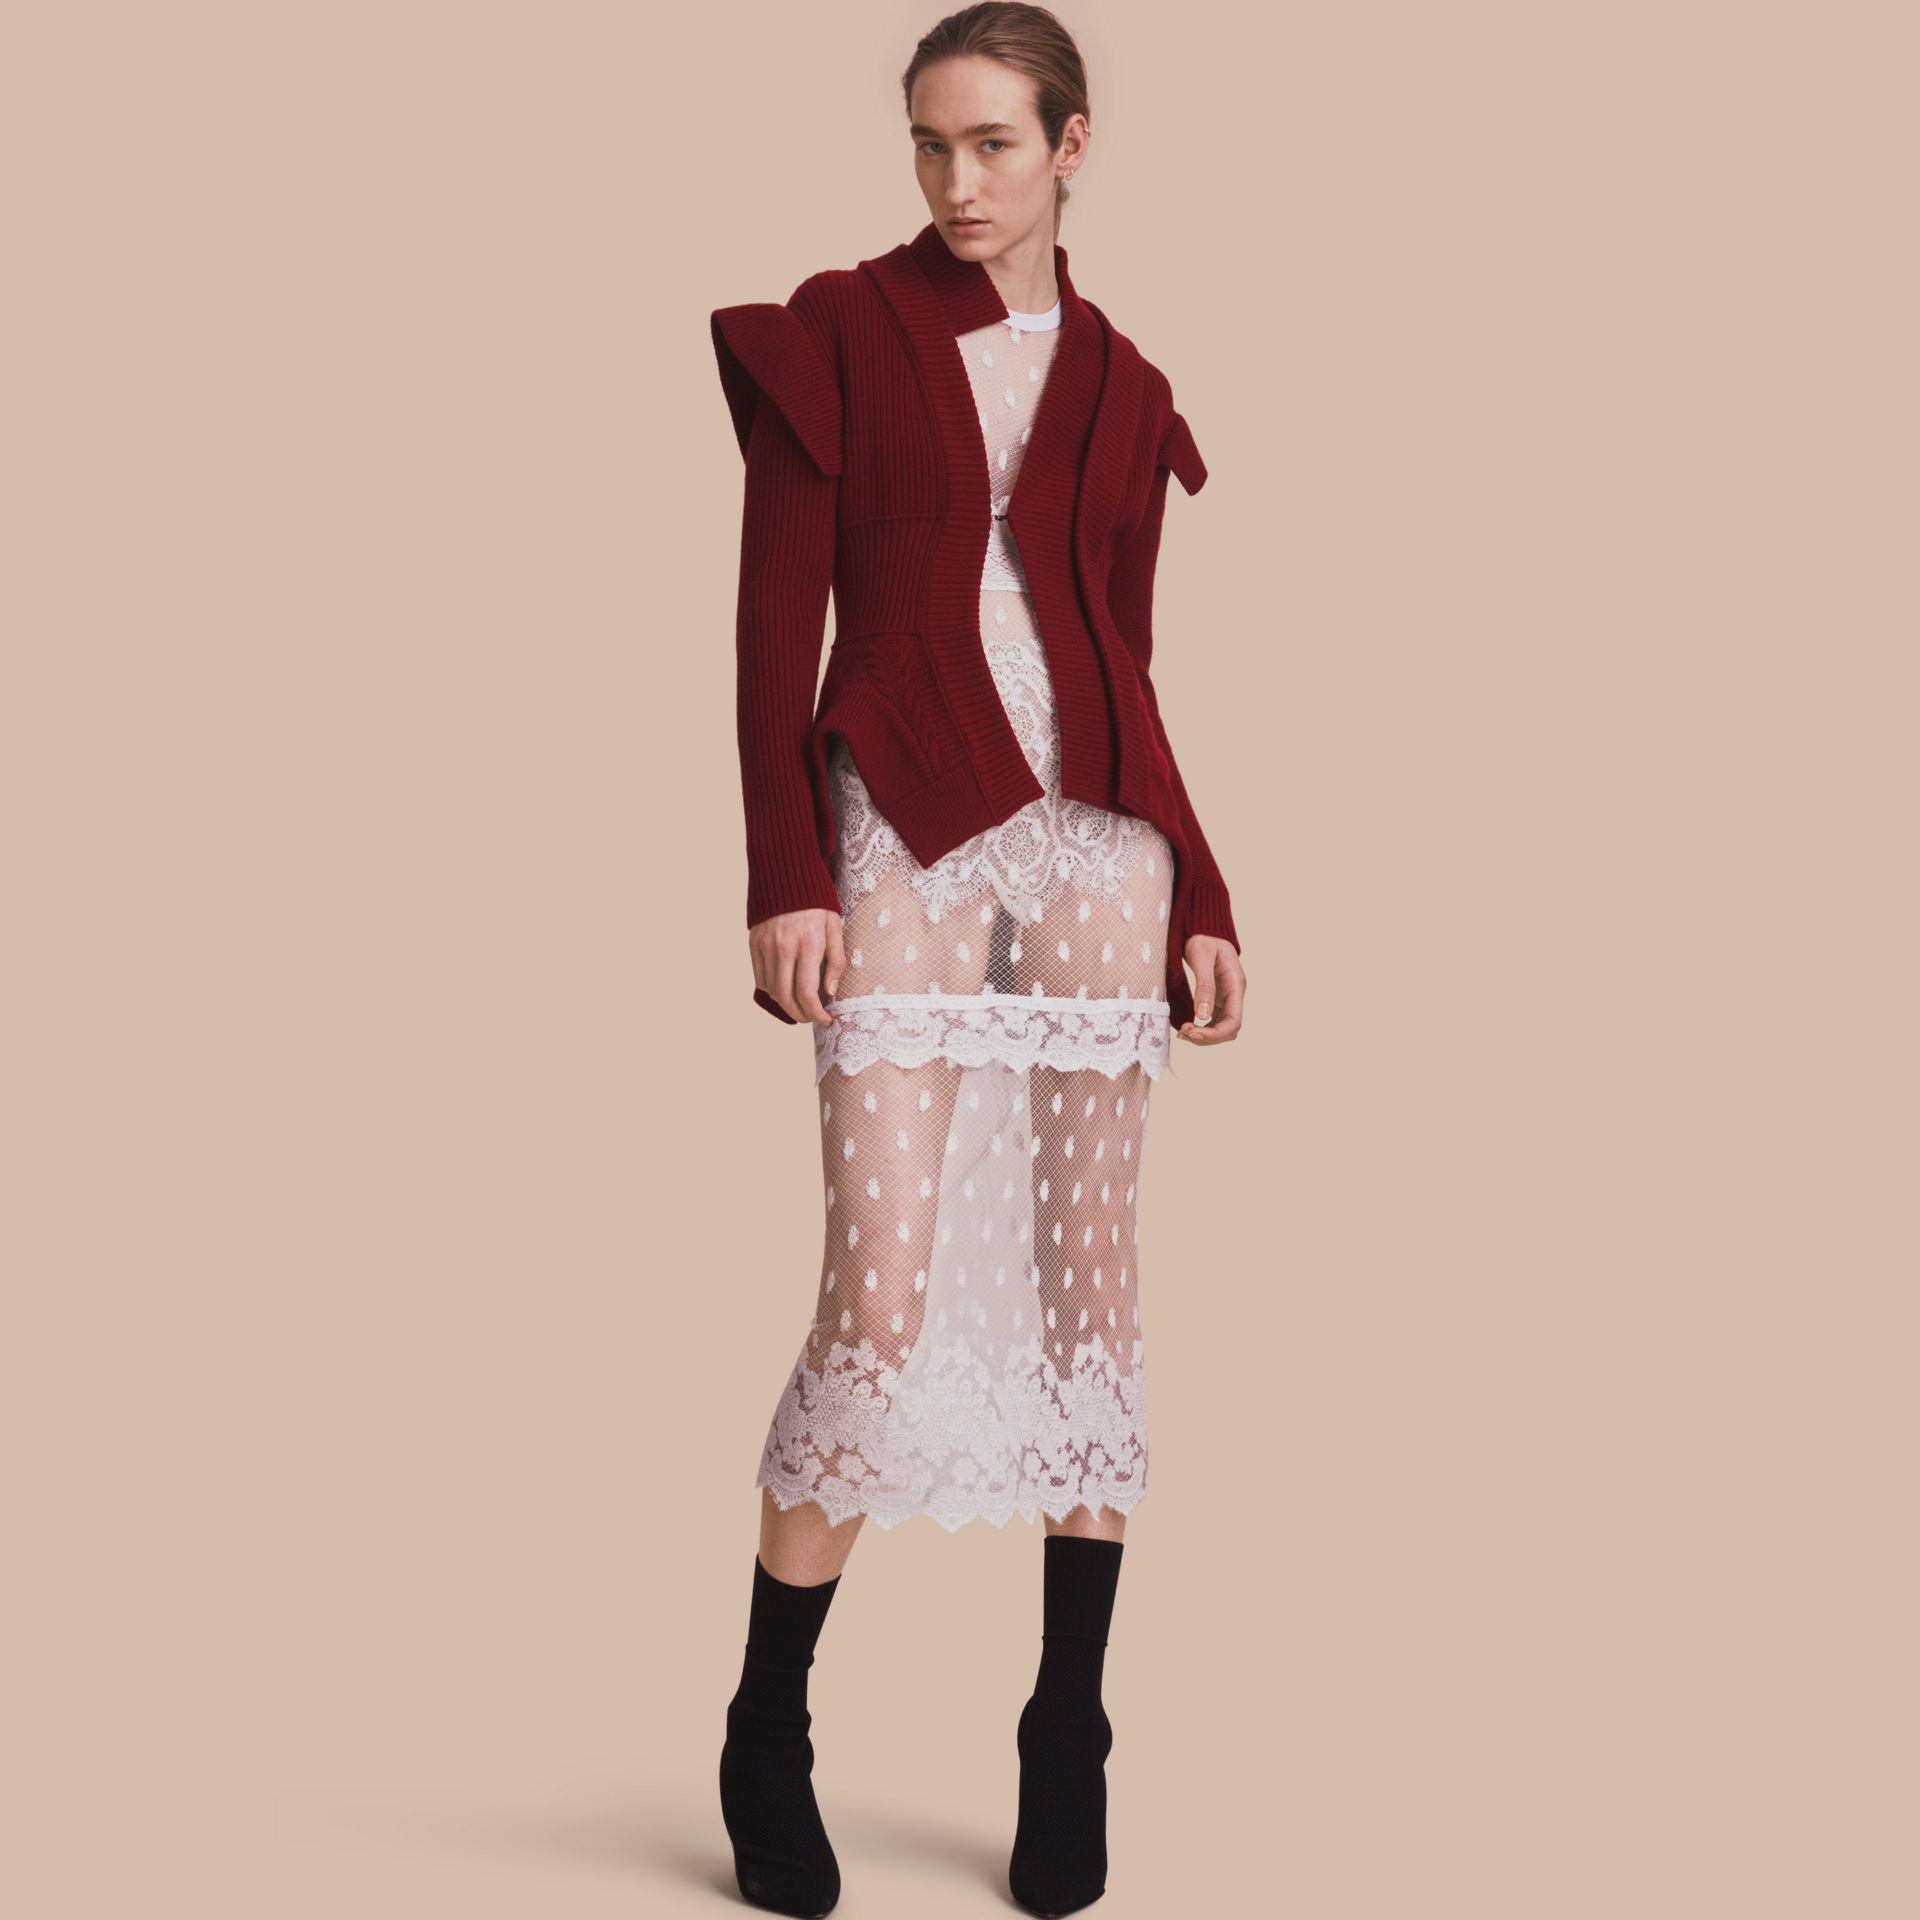 Knitted Wool Cashmere Military-inspired Jacket in Bordeaux - Women | Burberry Australia - gallery image 1